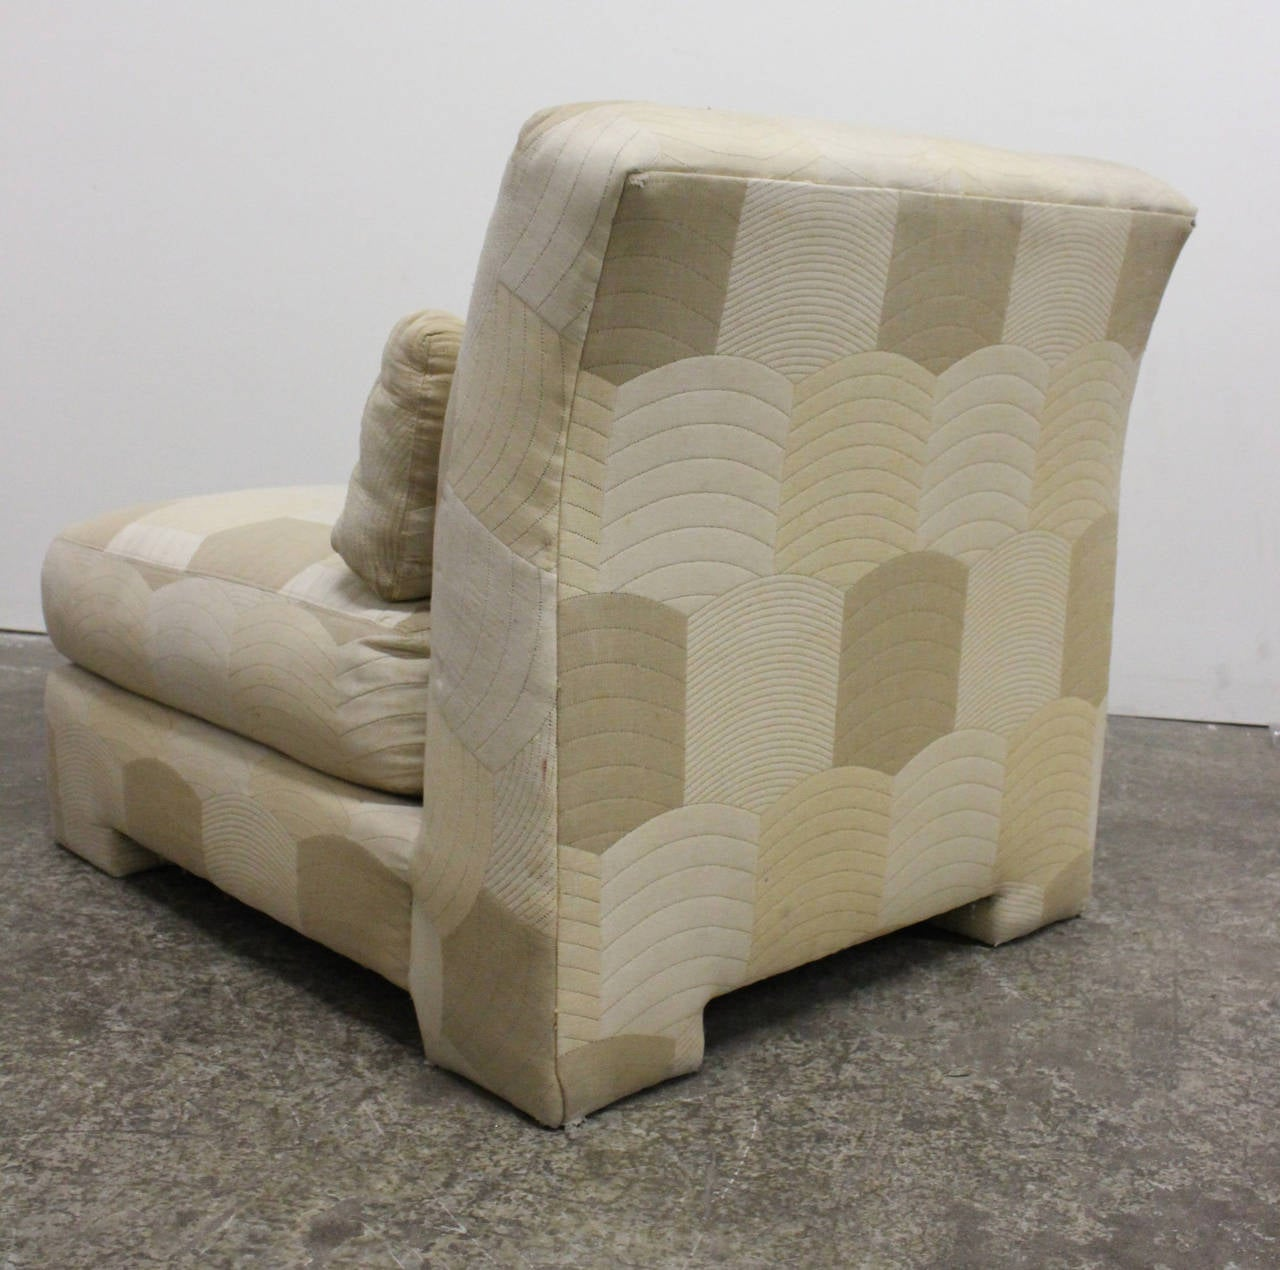 Pair of Slipper Lounge Chairs by Milo Baughman for Thayer Coggin For Sale 1